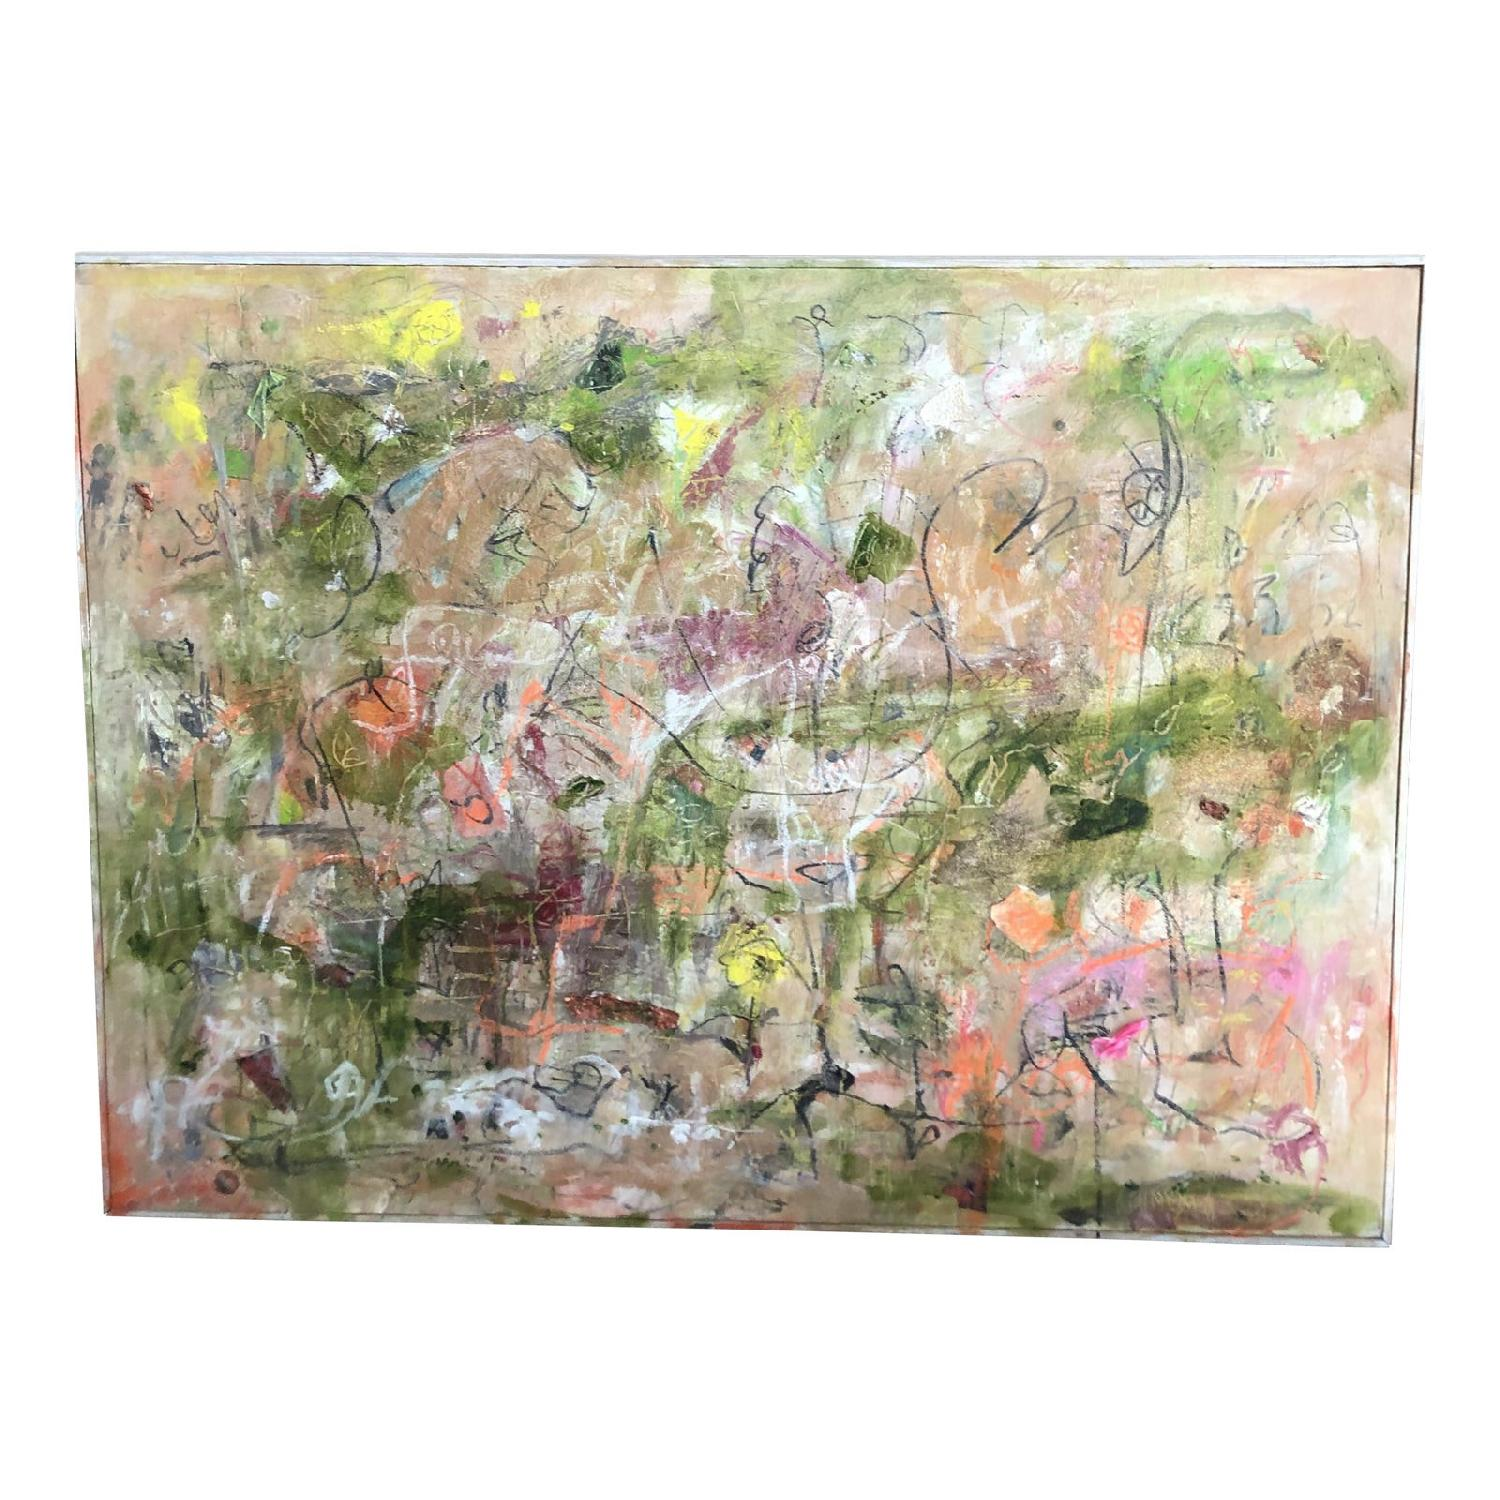 Mothers Garden Abstract Expressionist Landscape - image-2